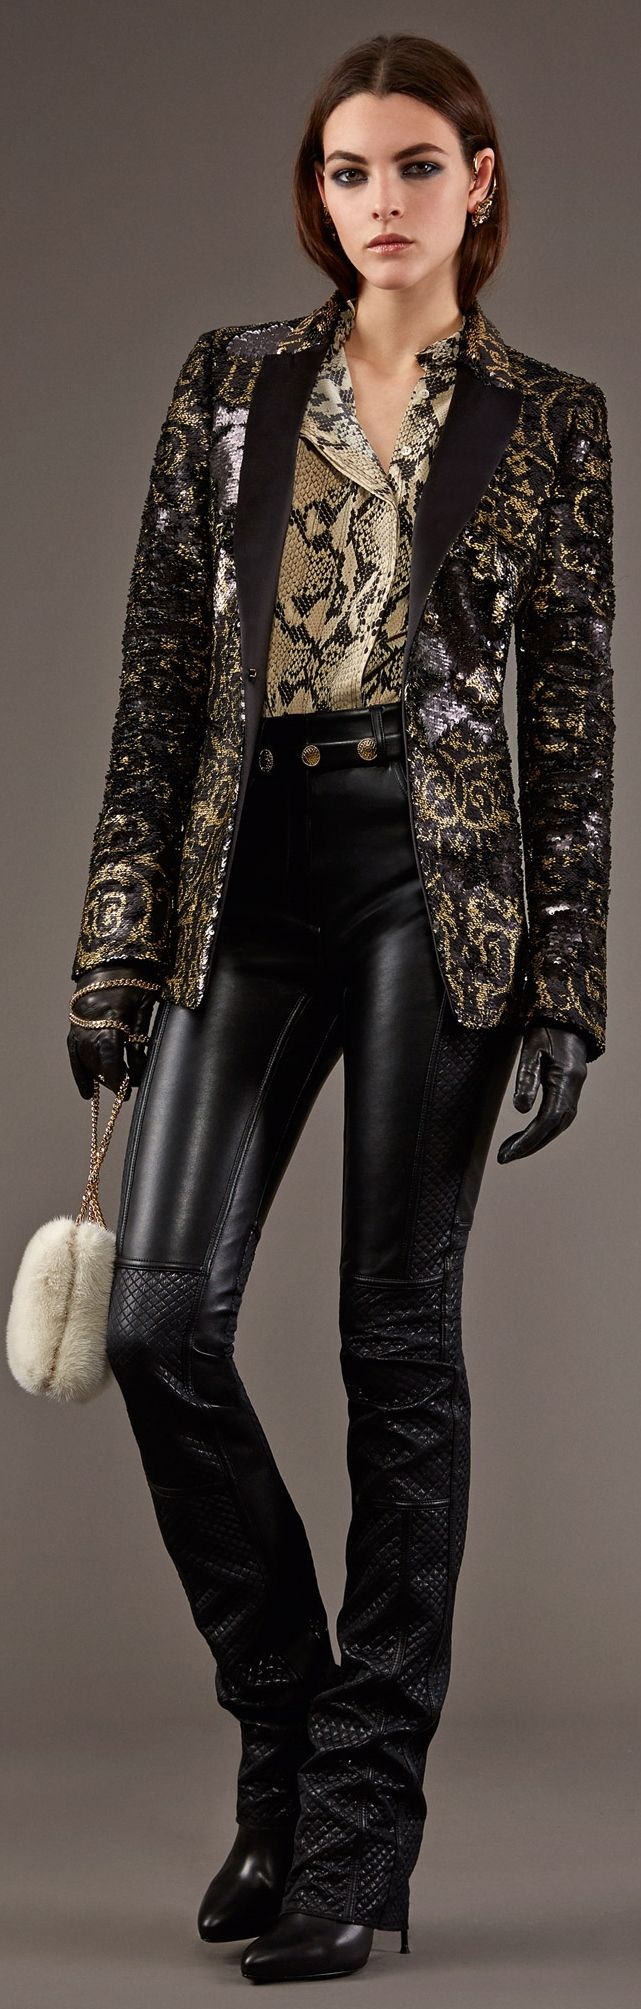 Roberto Cavalli Pre-Fall 2015. A rather pirate-inspired/Steven Tyler inspired ensemble, but either way....rock on and look freaking awesome.